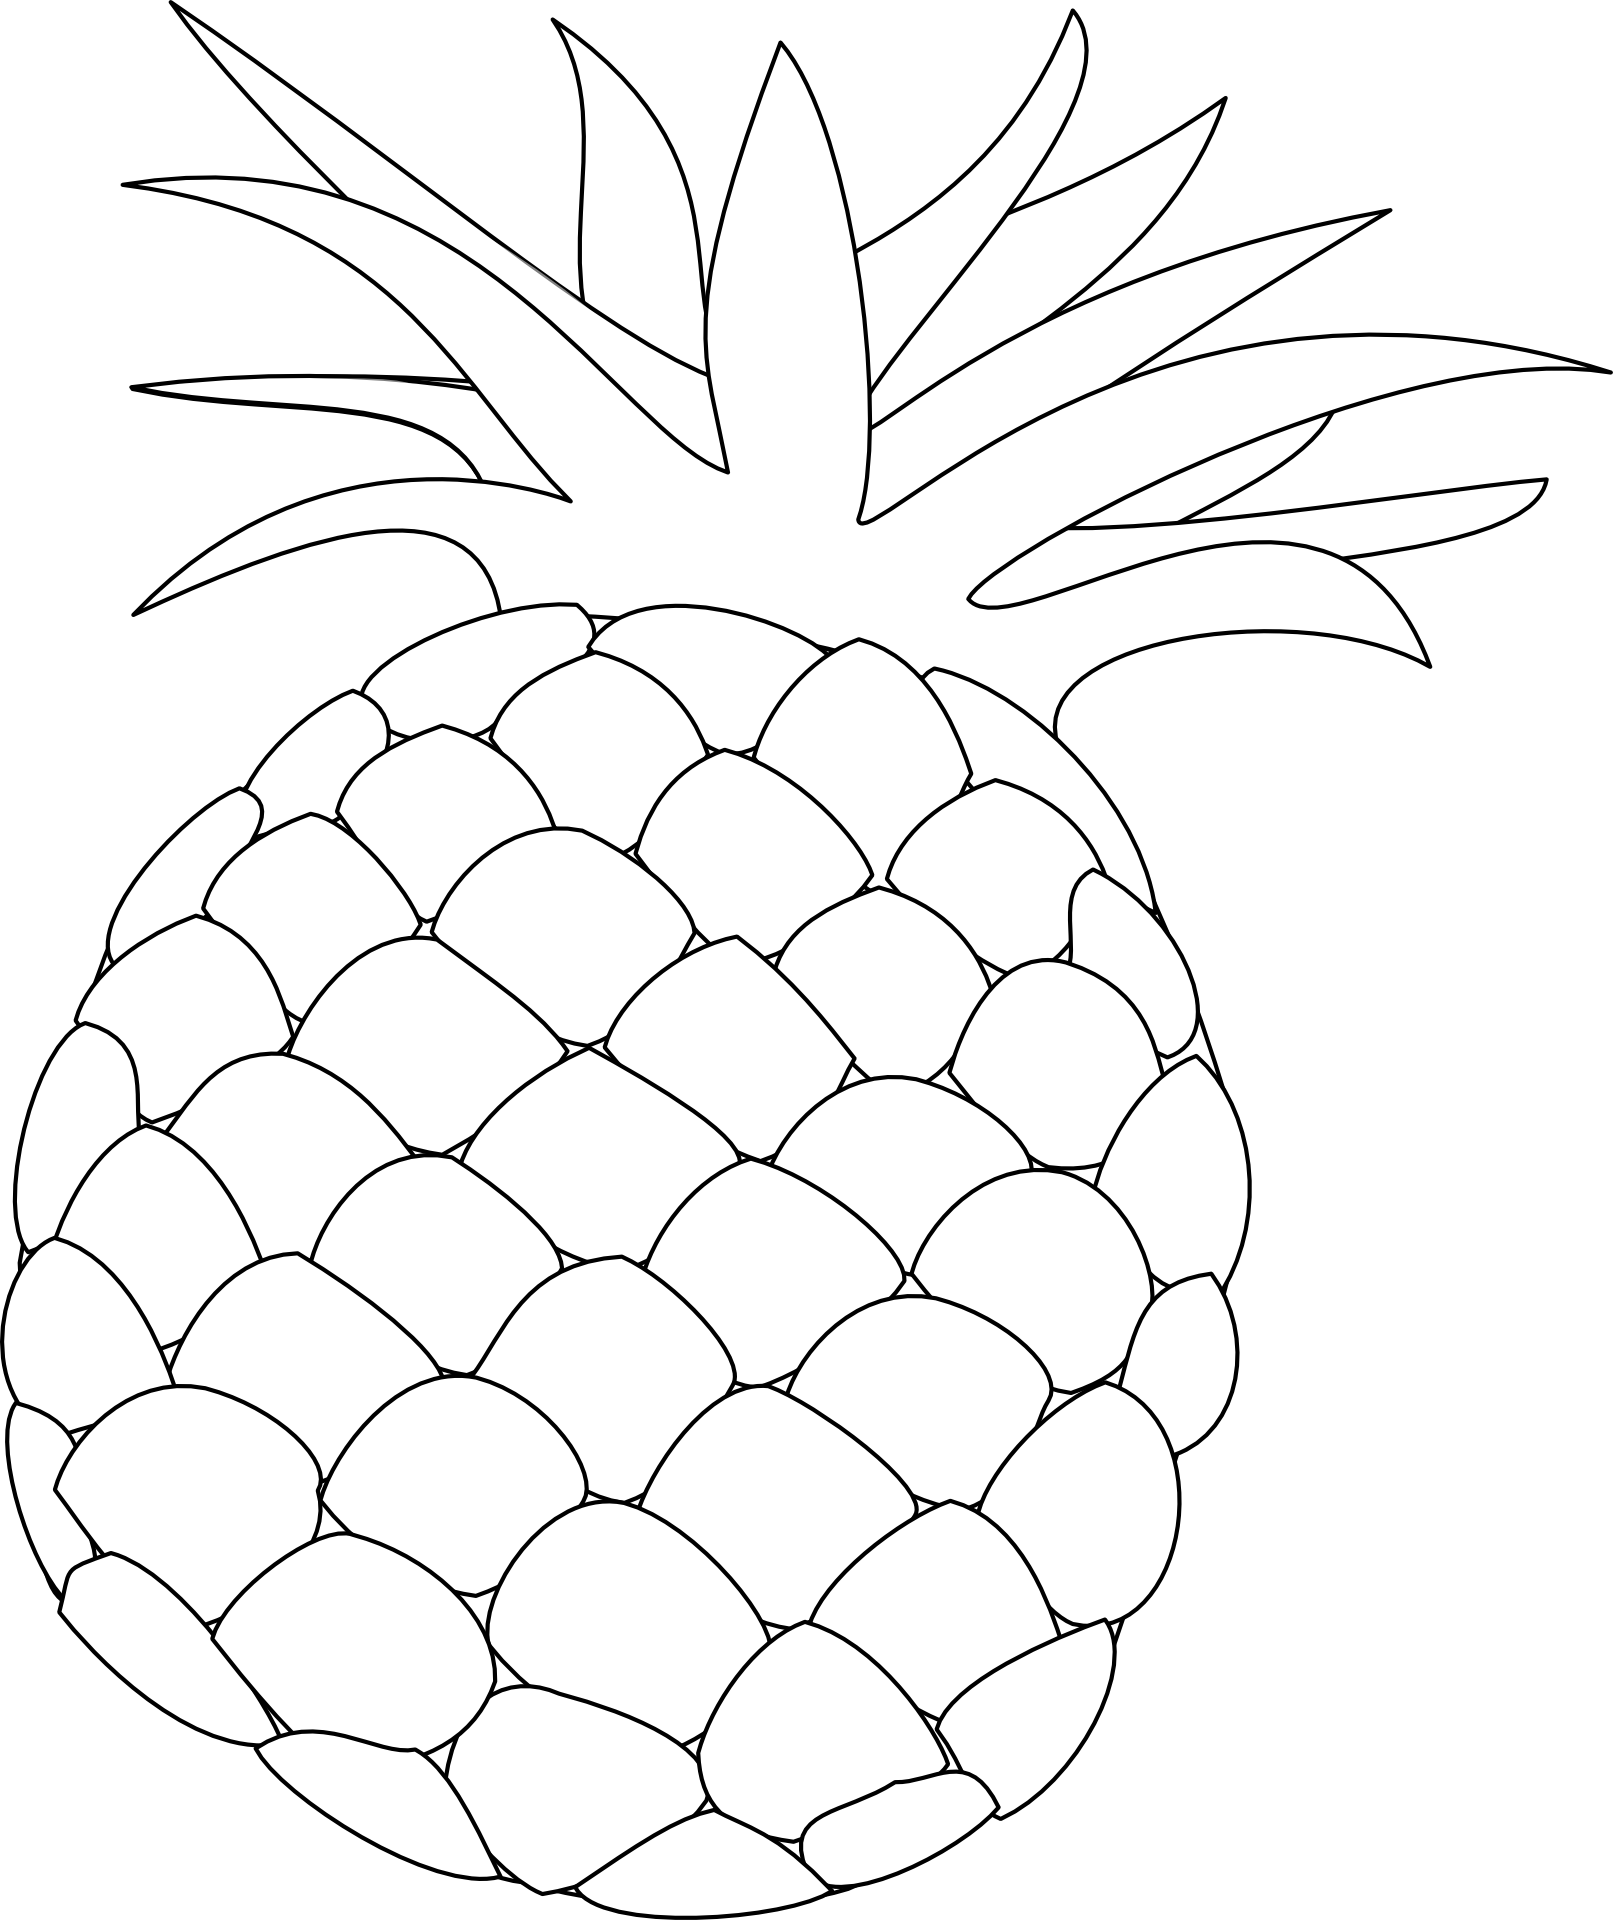 Clipart pineapple outline. Drawing of a fruit